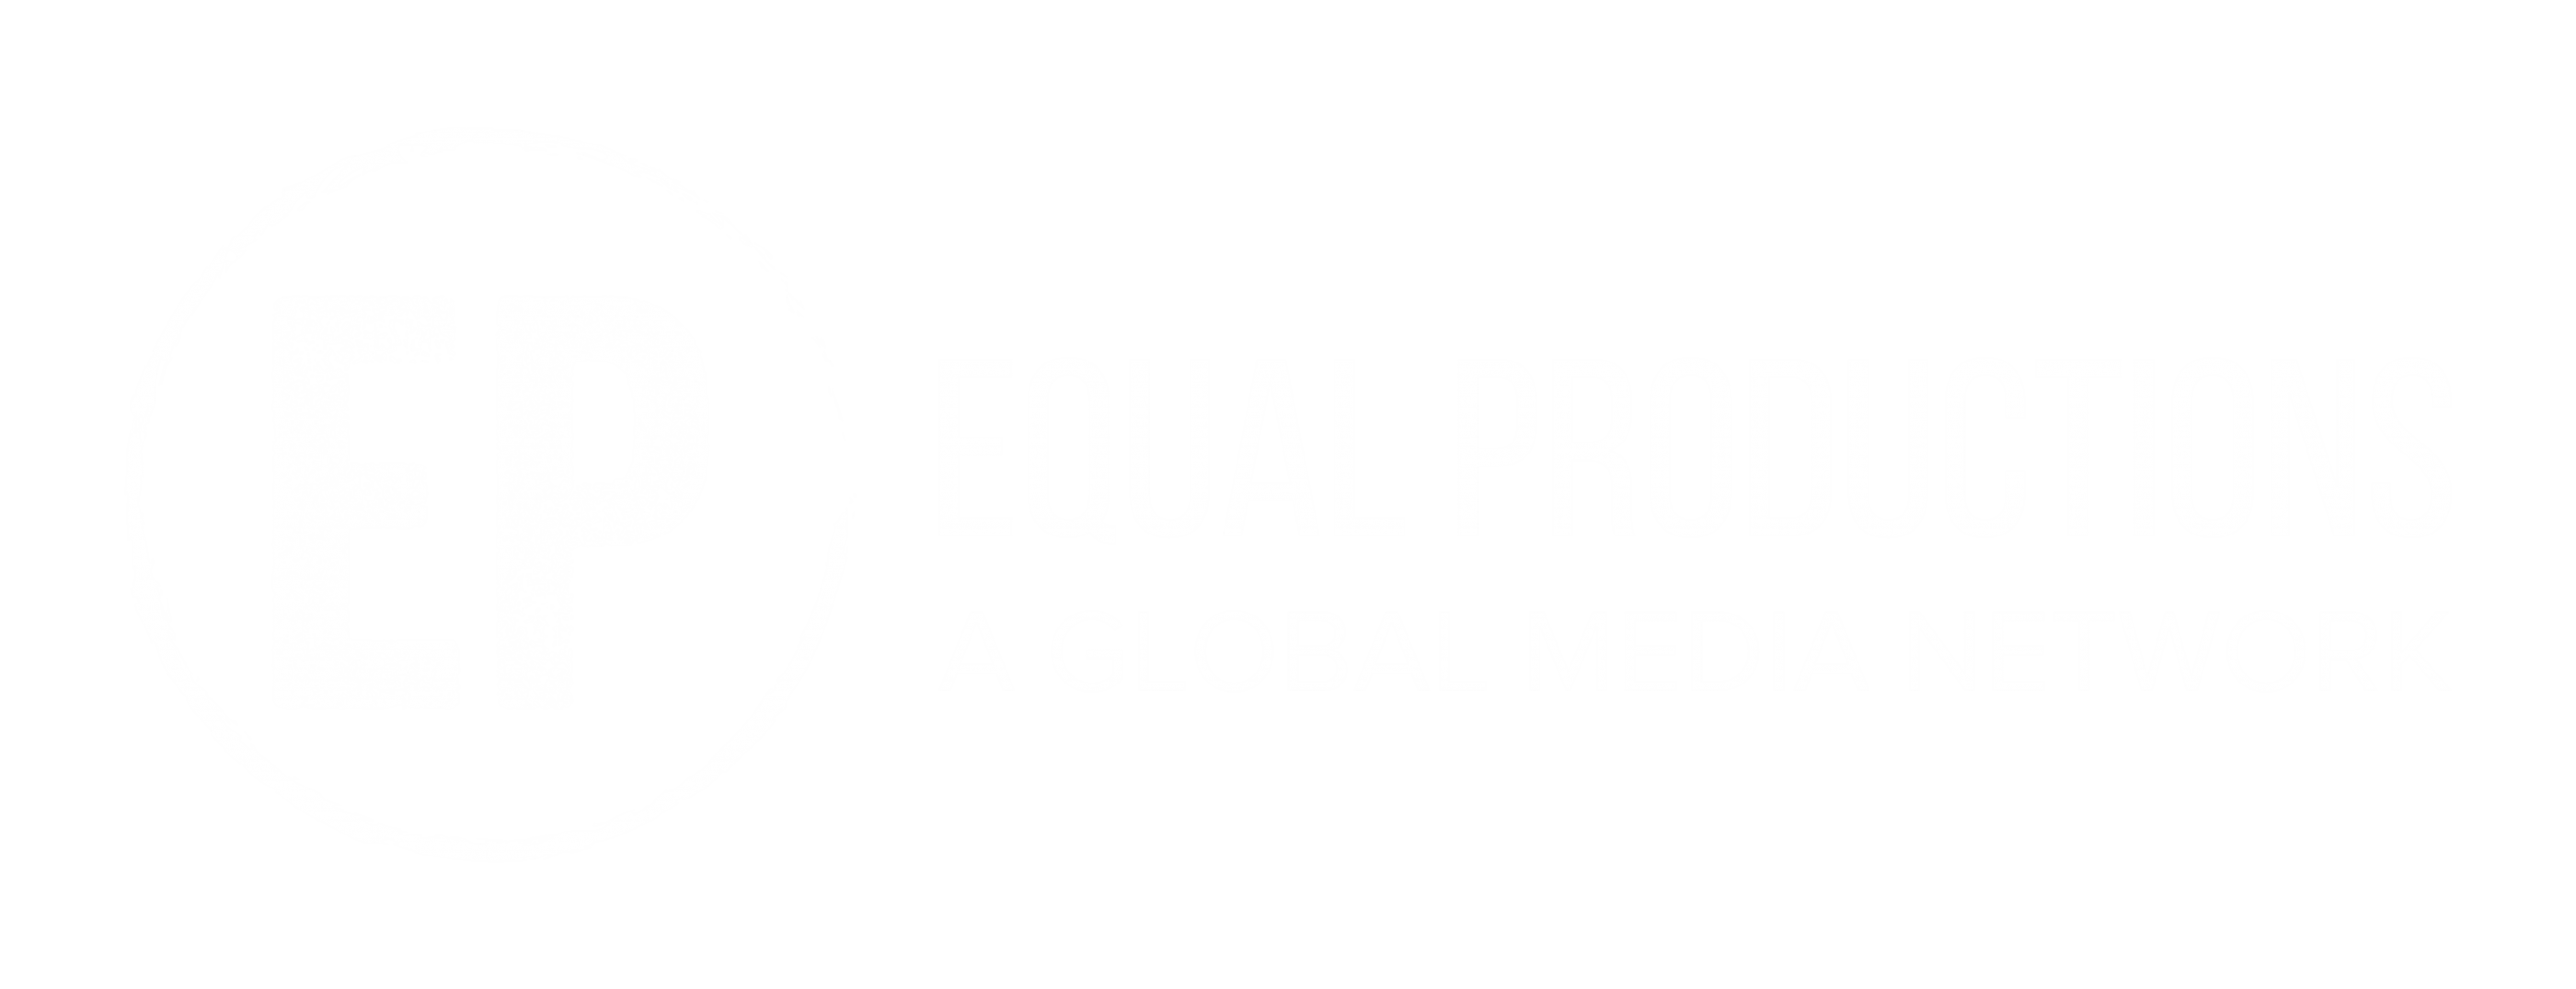 Equal Productions